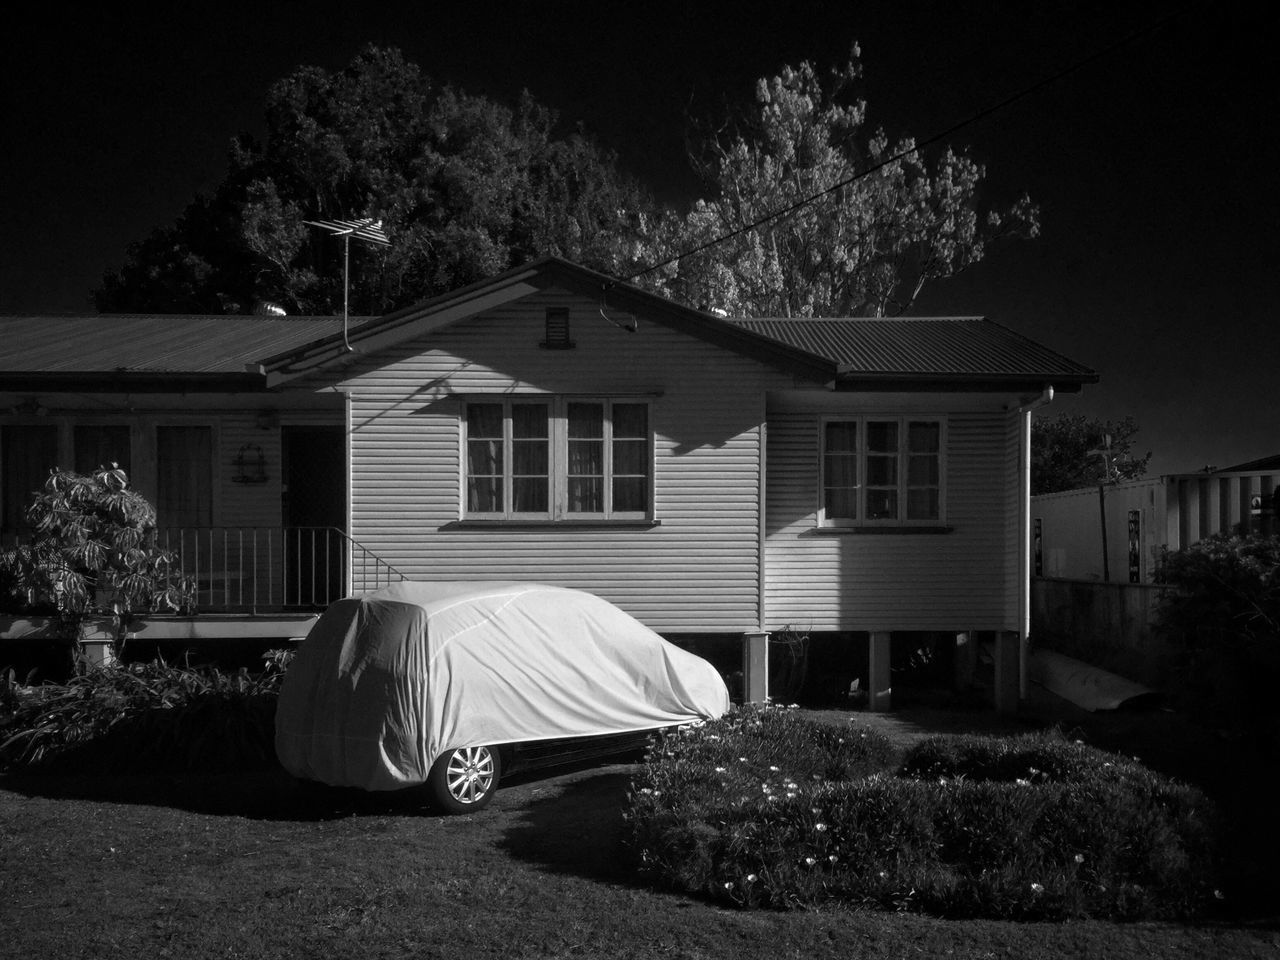 Tree House Built Structure Building Exterior Outdoors Architecture No People Night Car Monochrome Photography Streetphotography_bw